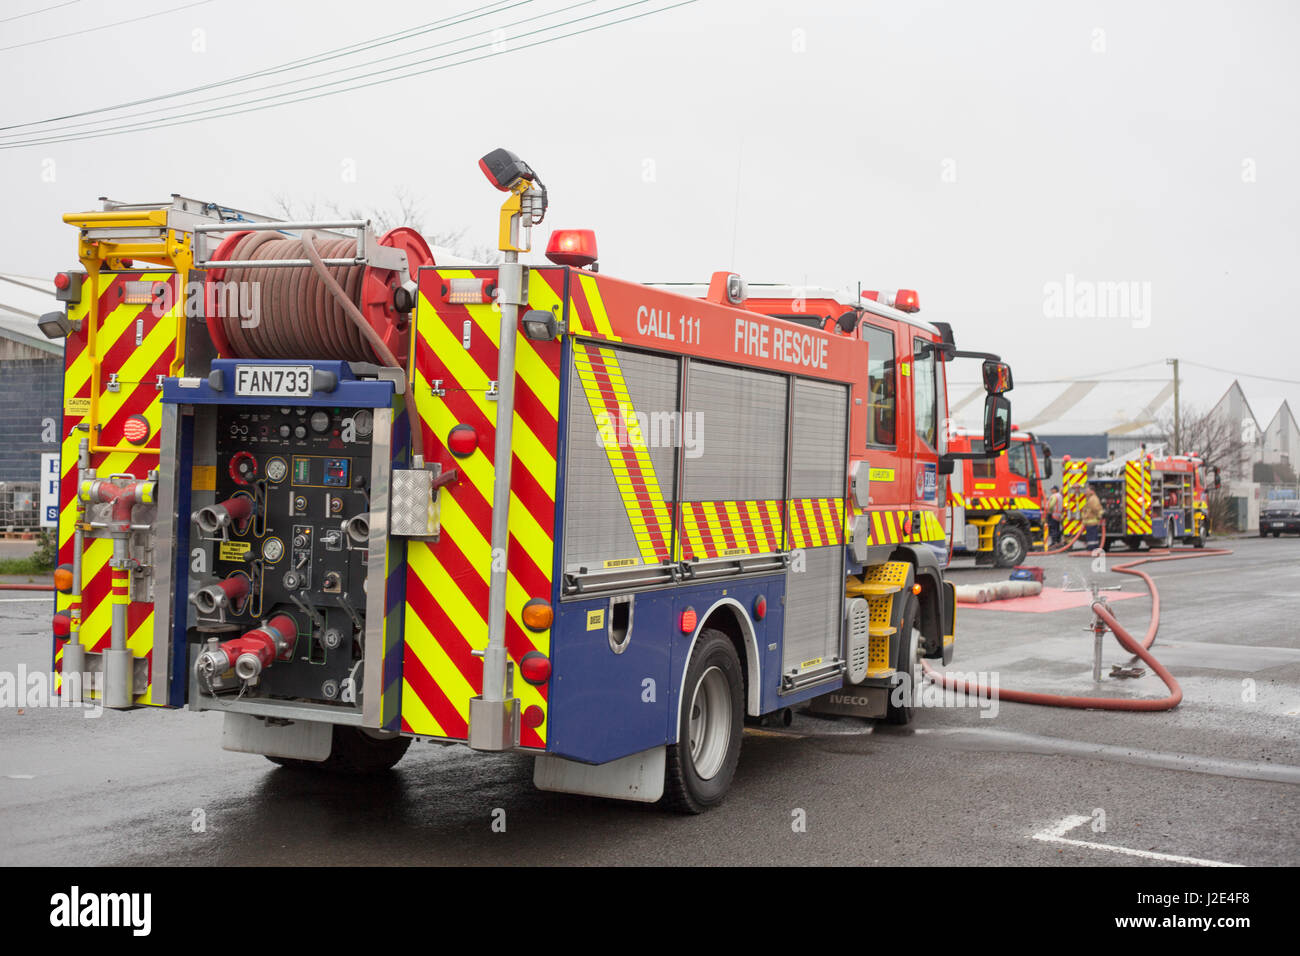 Fire brigade engine, Ashburton,Mid Canterbury,South Island, New Zealand - Stock Image